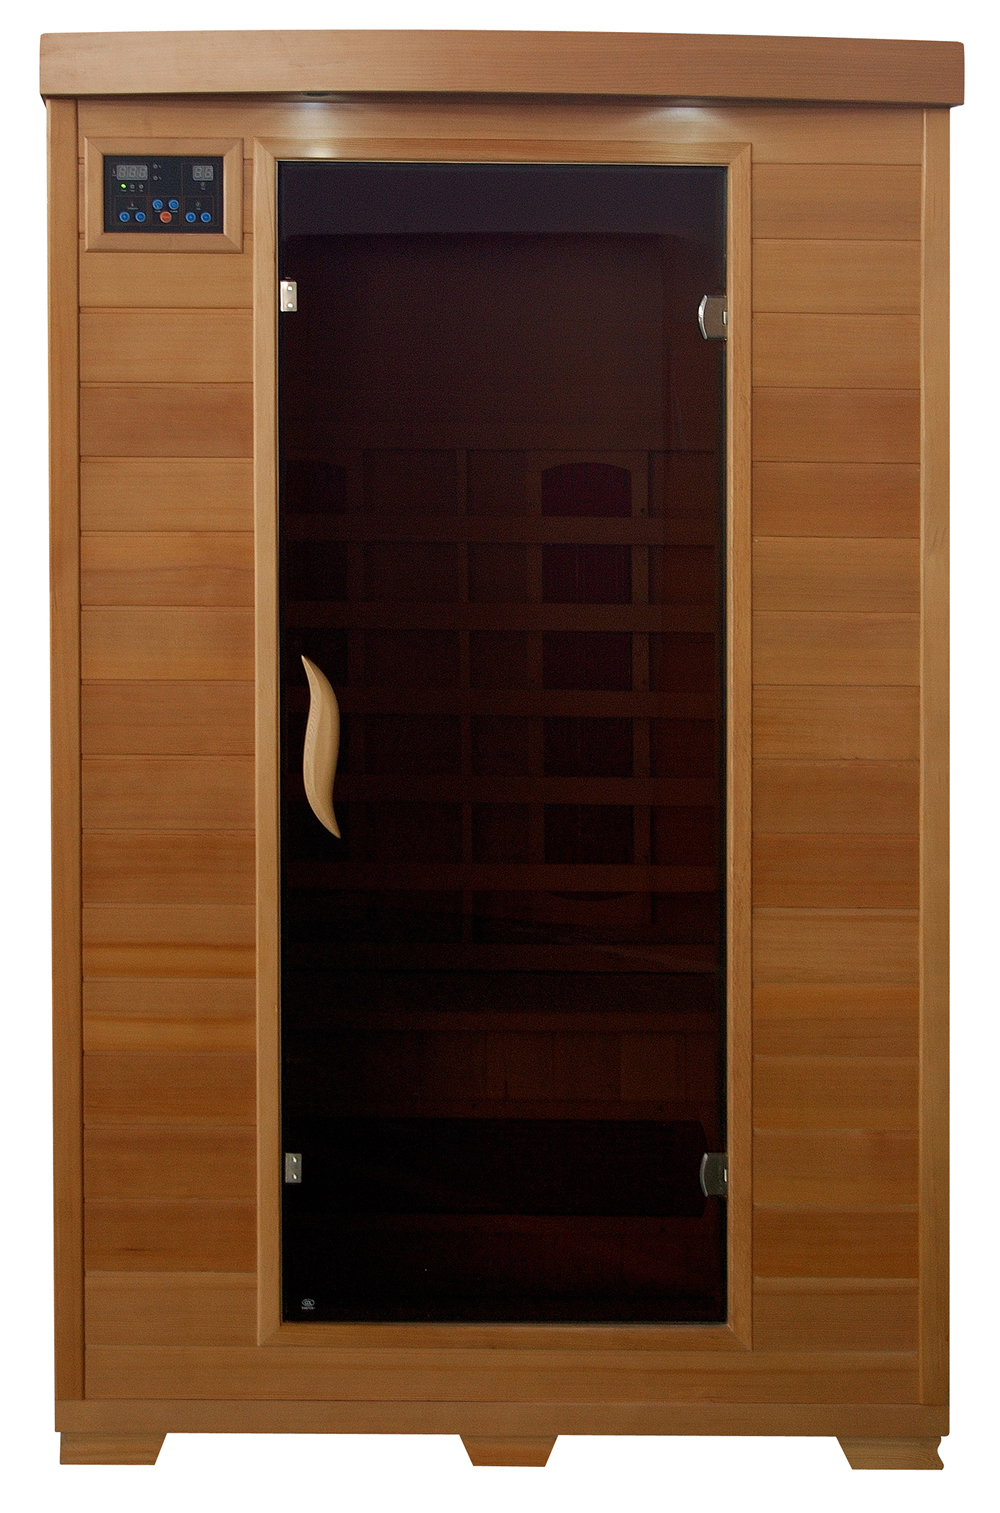 Infrared Sauna With Salt Wall In Nh Hotel Zandvoort The: 2 Person FAR Infrared Sauna With Ceramic